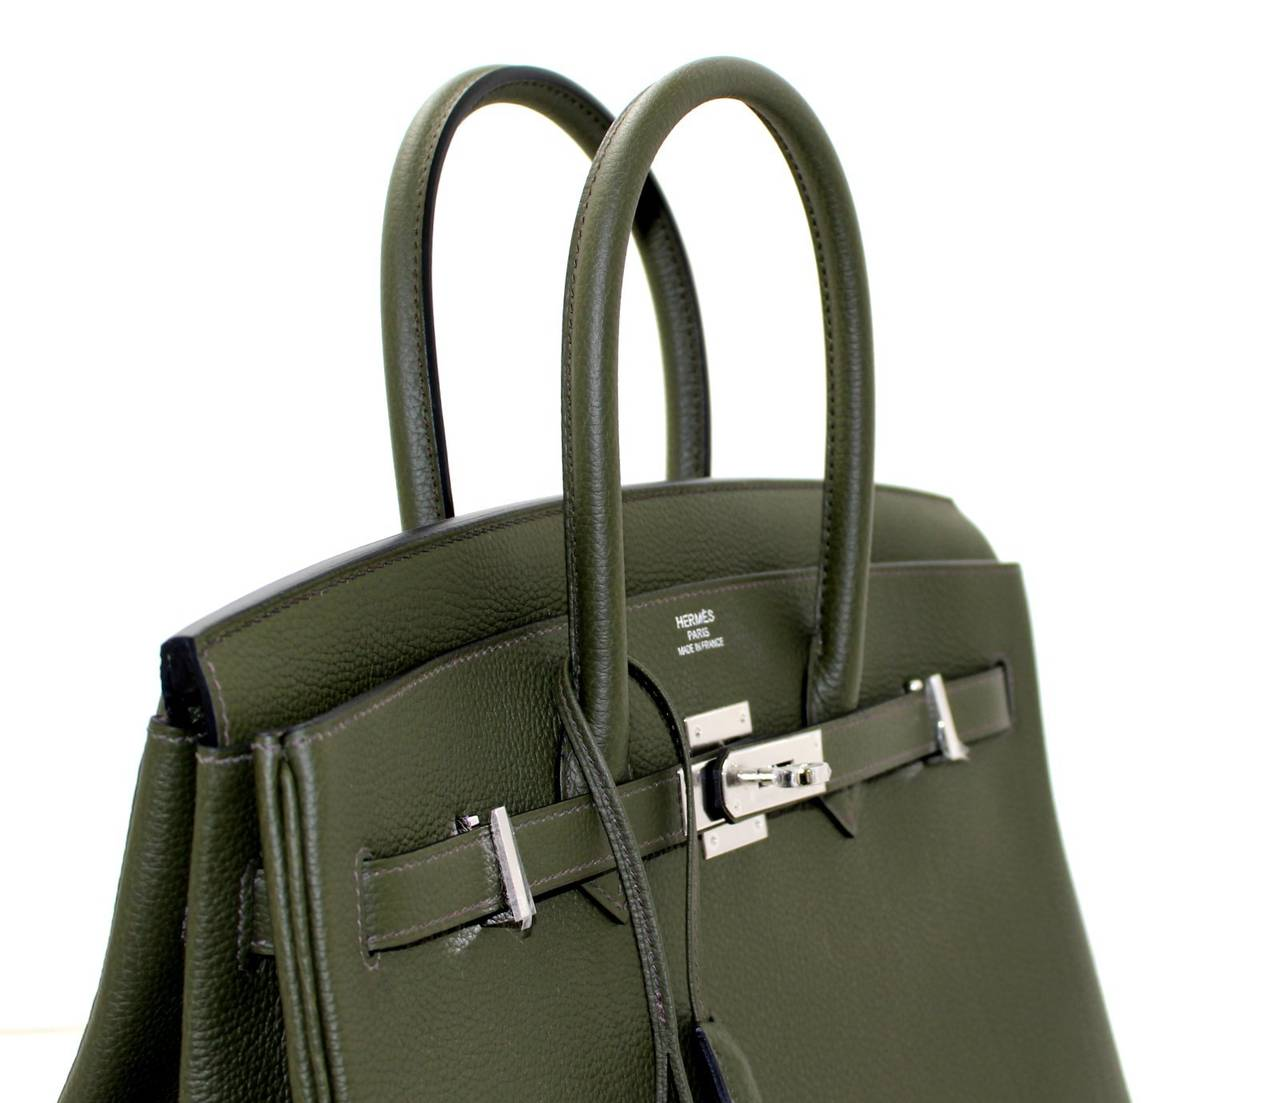 hermes birkin replica reviews - Hermes Birkin Bag in Vert Olive green Togo Leather, 35 cm size at ...